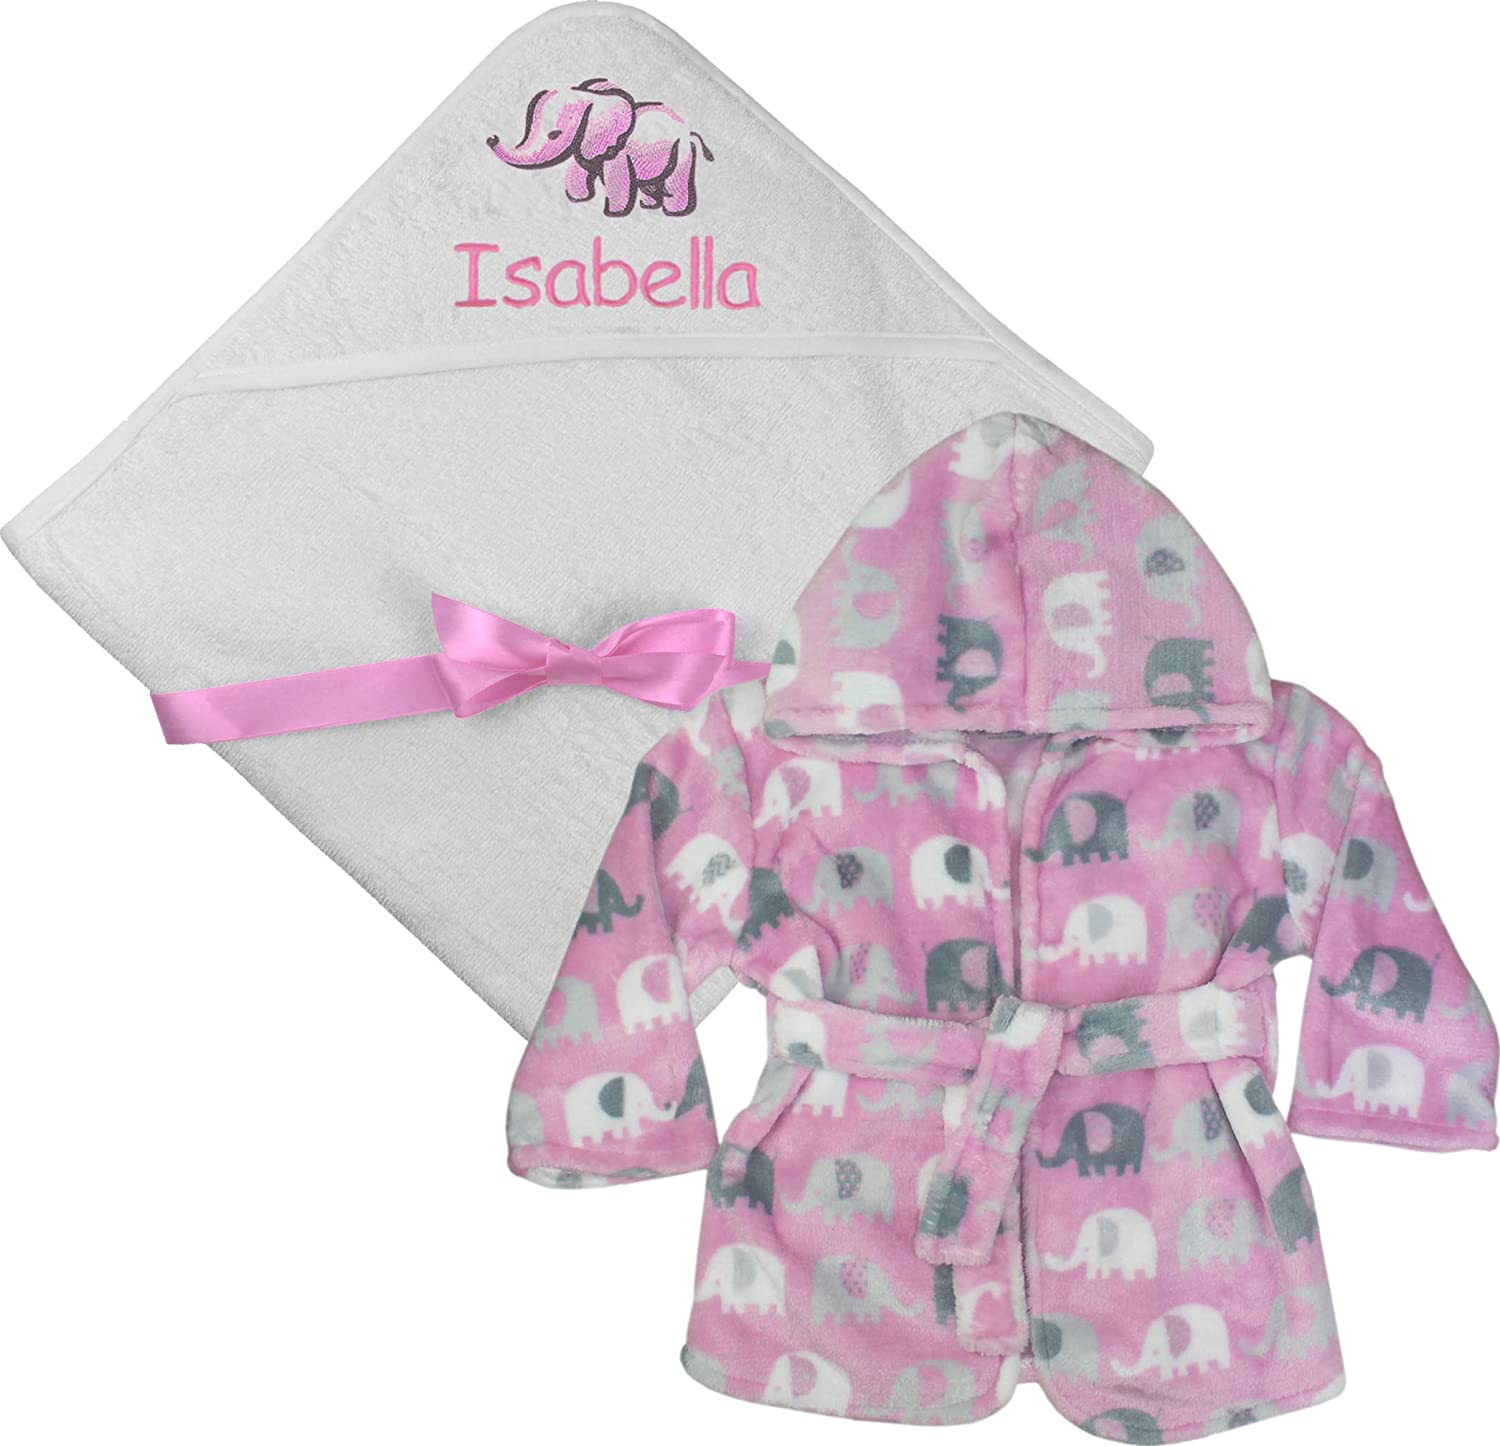 Personalised Gift Set Baby Girl's Hooded Bath Towel and Bathrobe Dressing Gown